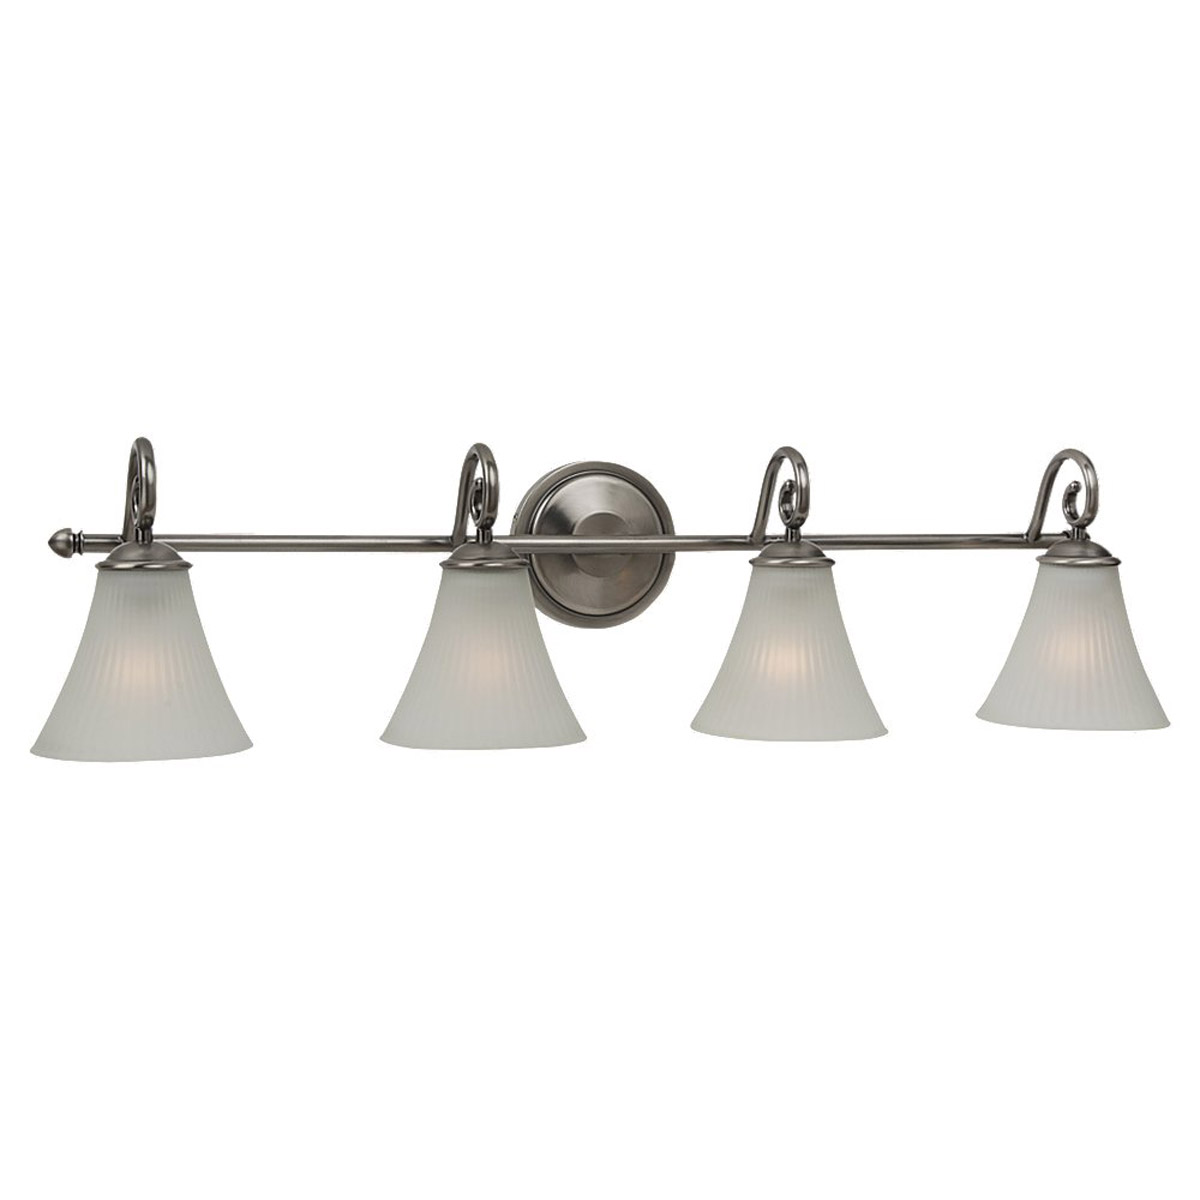 Sea Gull Lighting Joliet 4 Light Bath Vanity in Antique Brushed Nickel 44938-965 photo